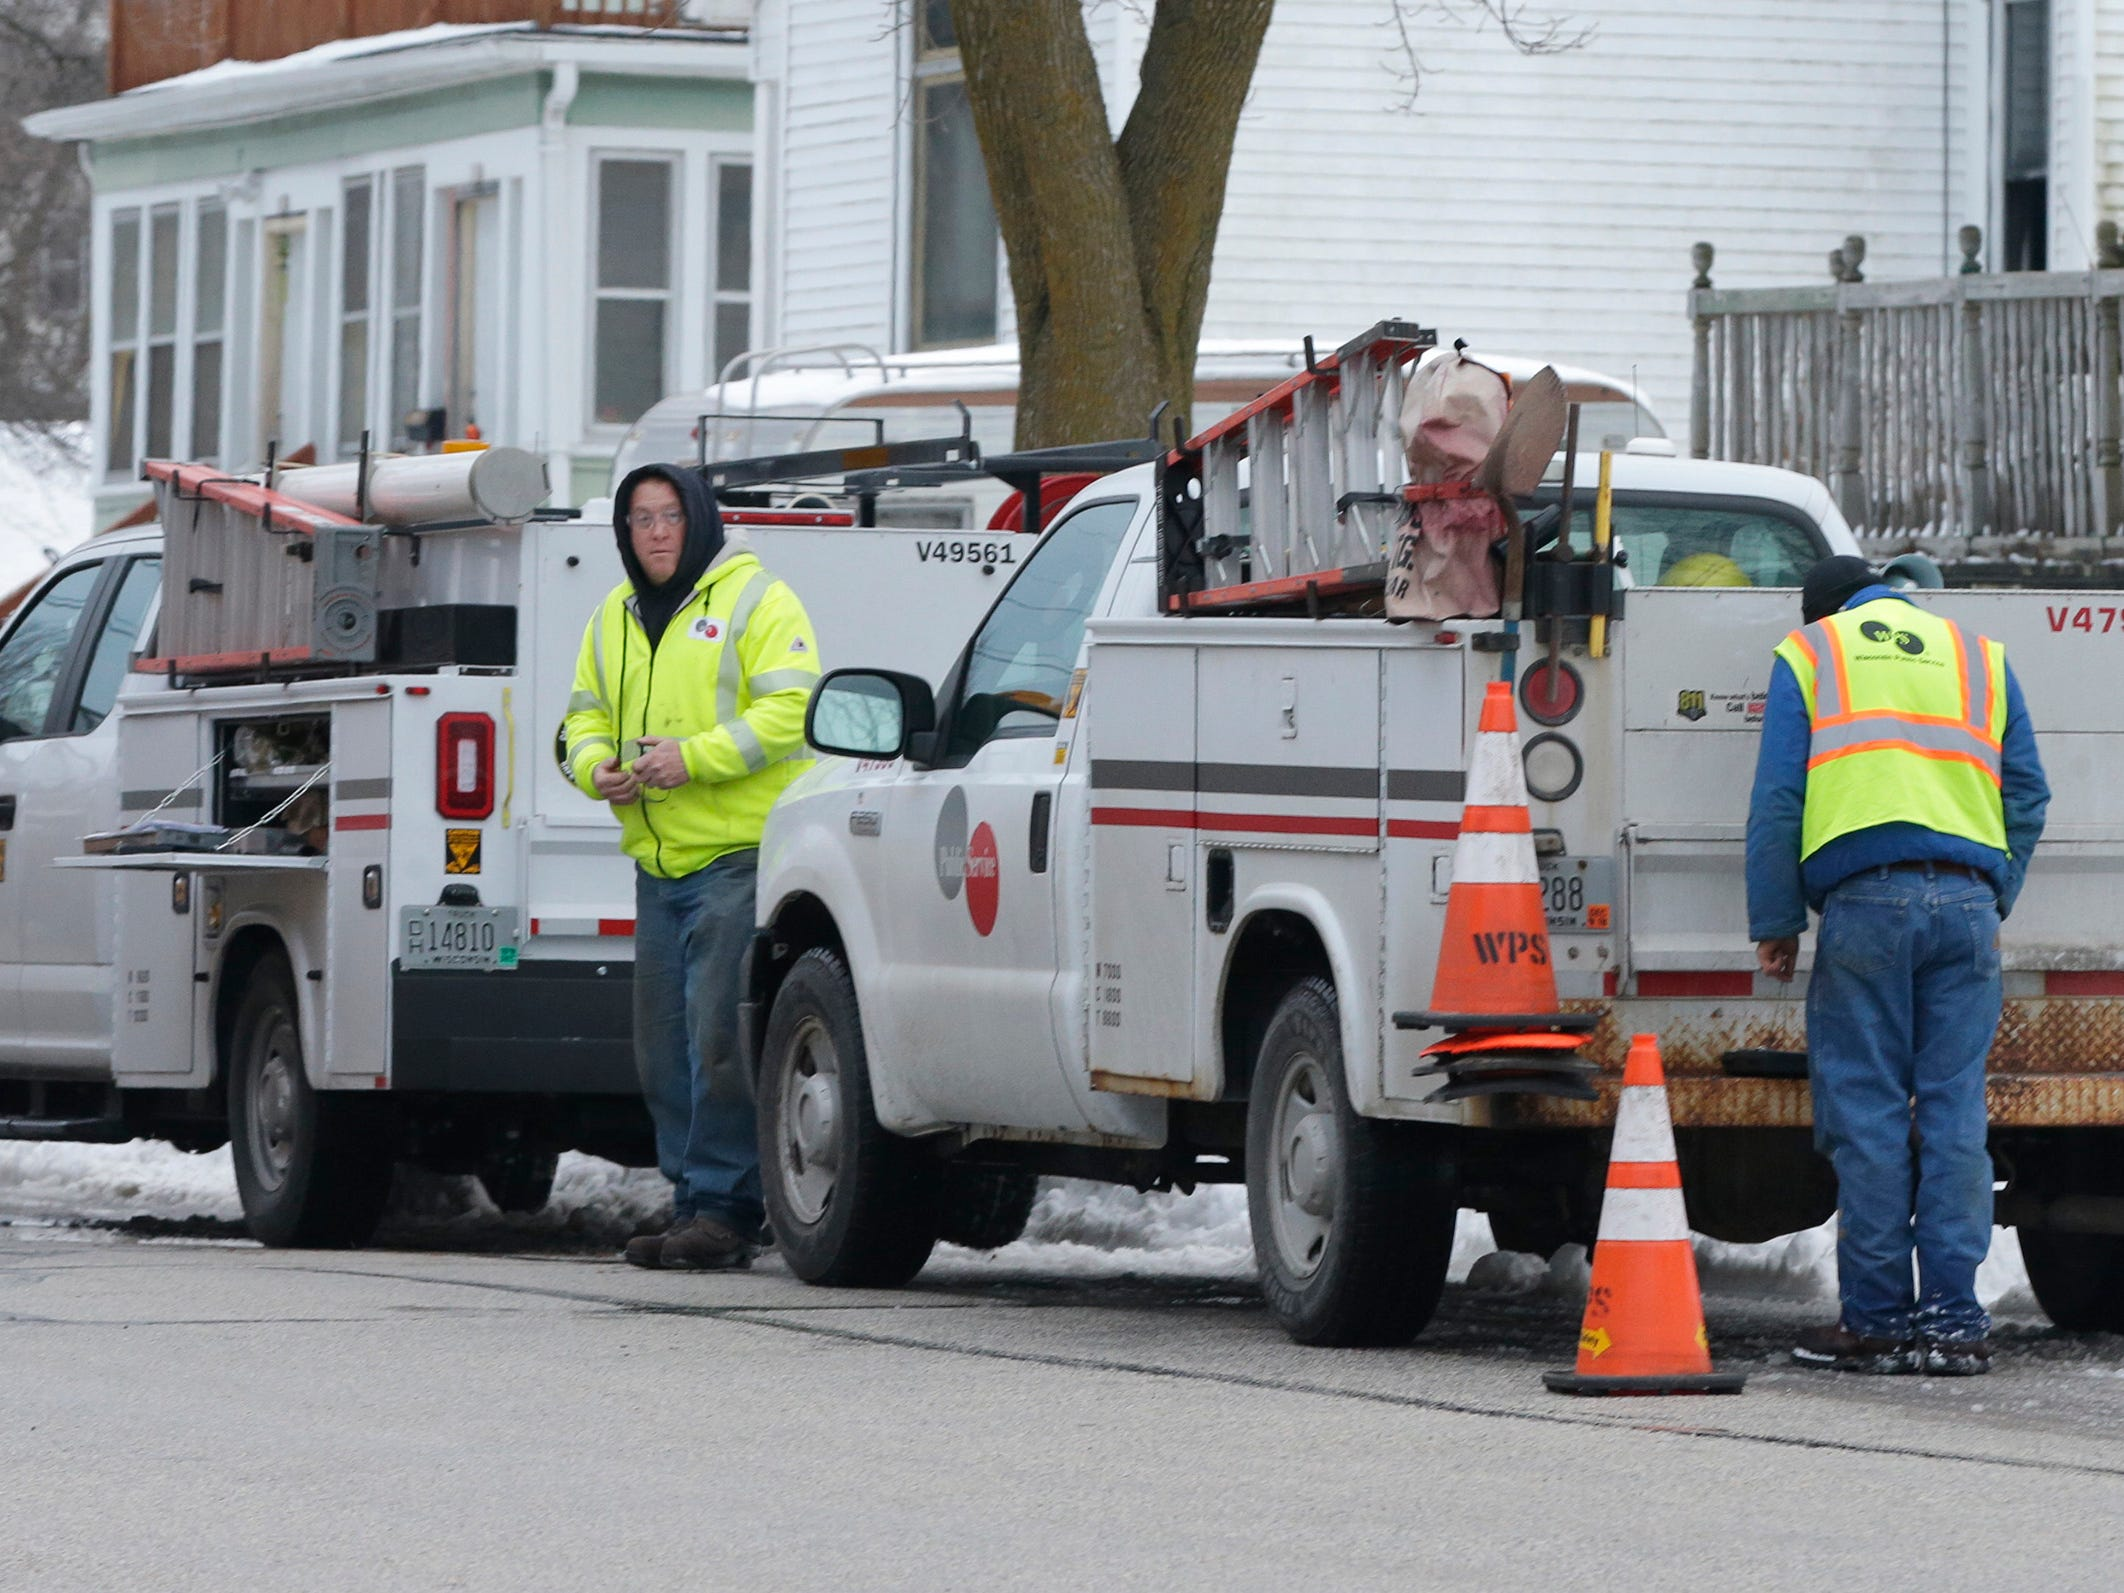 Wisconsin Public Service trucks park on North 13th Street near Pennsylvania Avenue and Commerce where crews were working on a gas leak, Thursday, February 14, 2019, in Sheboygan, Wis. Sheboygan Police said that 300 homes lost gas service from the outage that is expected to last until 11 p.m.